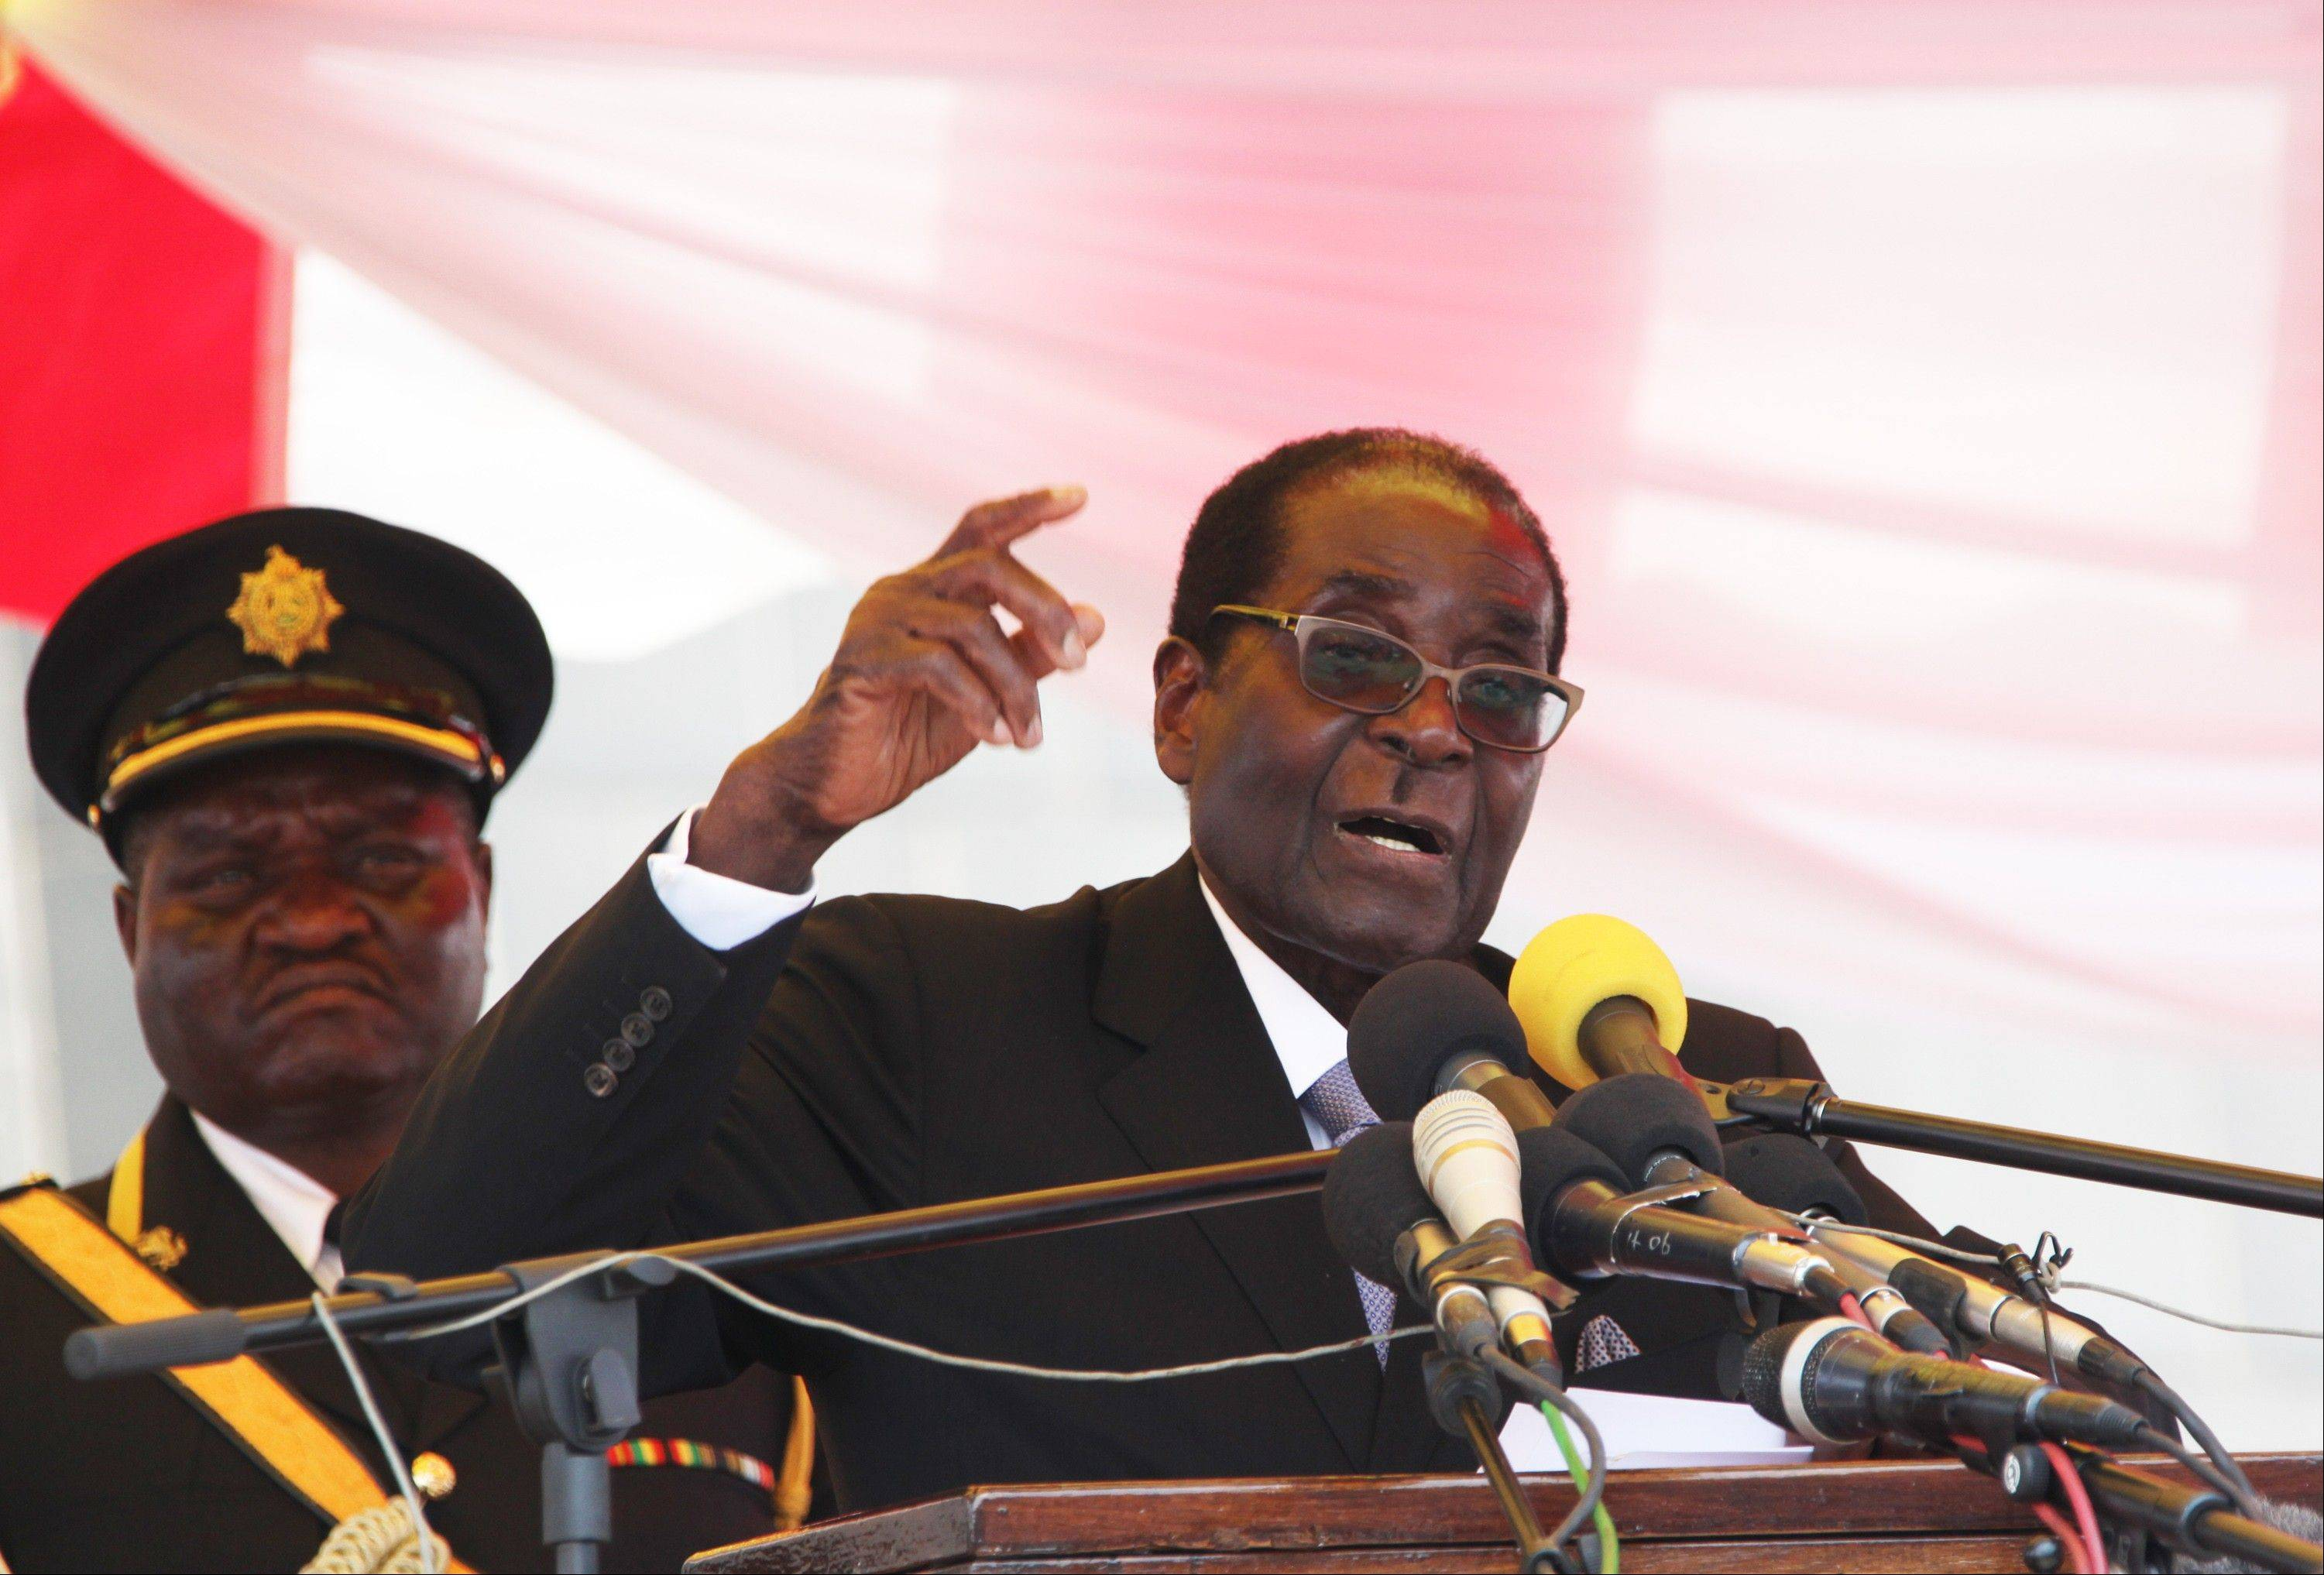 Zimbabwe President Robert Mugabe makes a speech at the state burial of a former foreign minister Stan Mudenge, in Harare, Monday. Mugabe says he wants his people to be tolerant of each other's views to allow for a free vote in proposed elections.